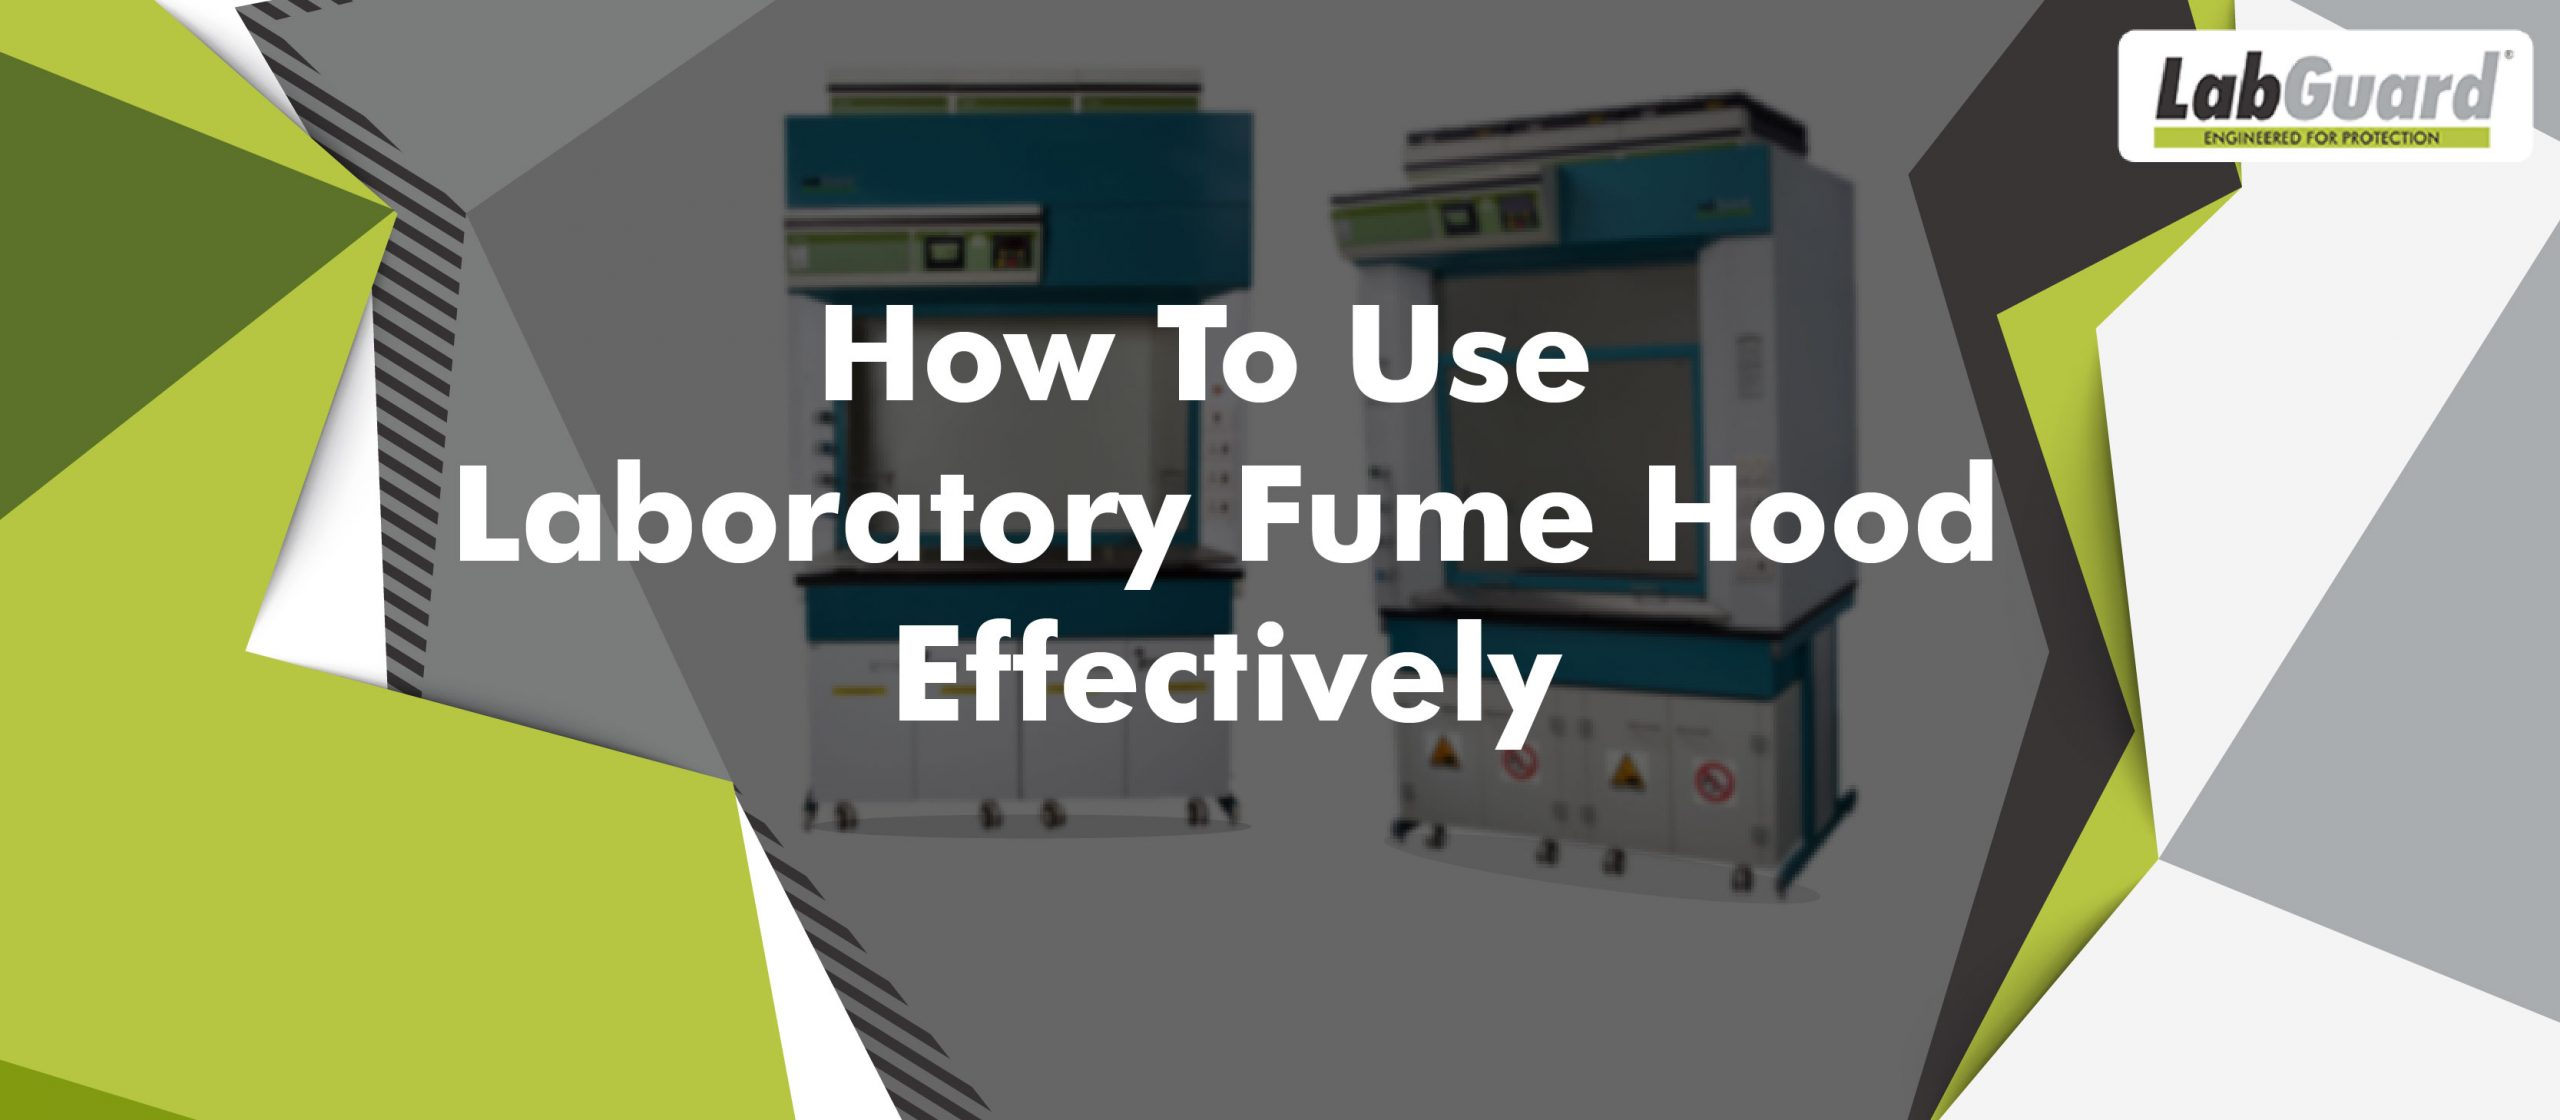 How to use laboratory fume hood effectively